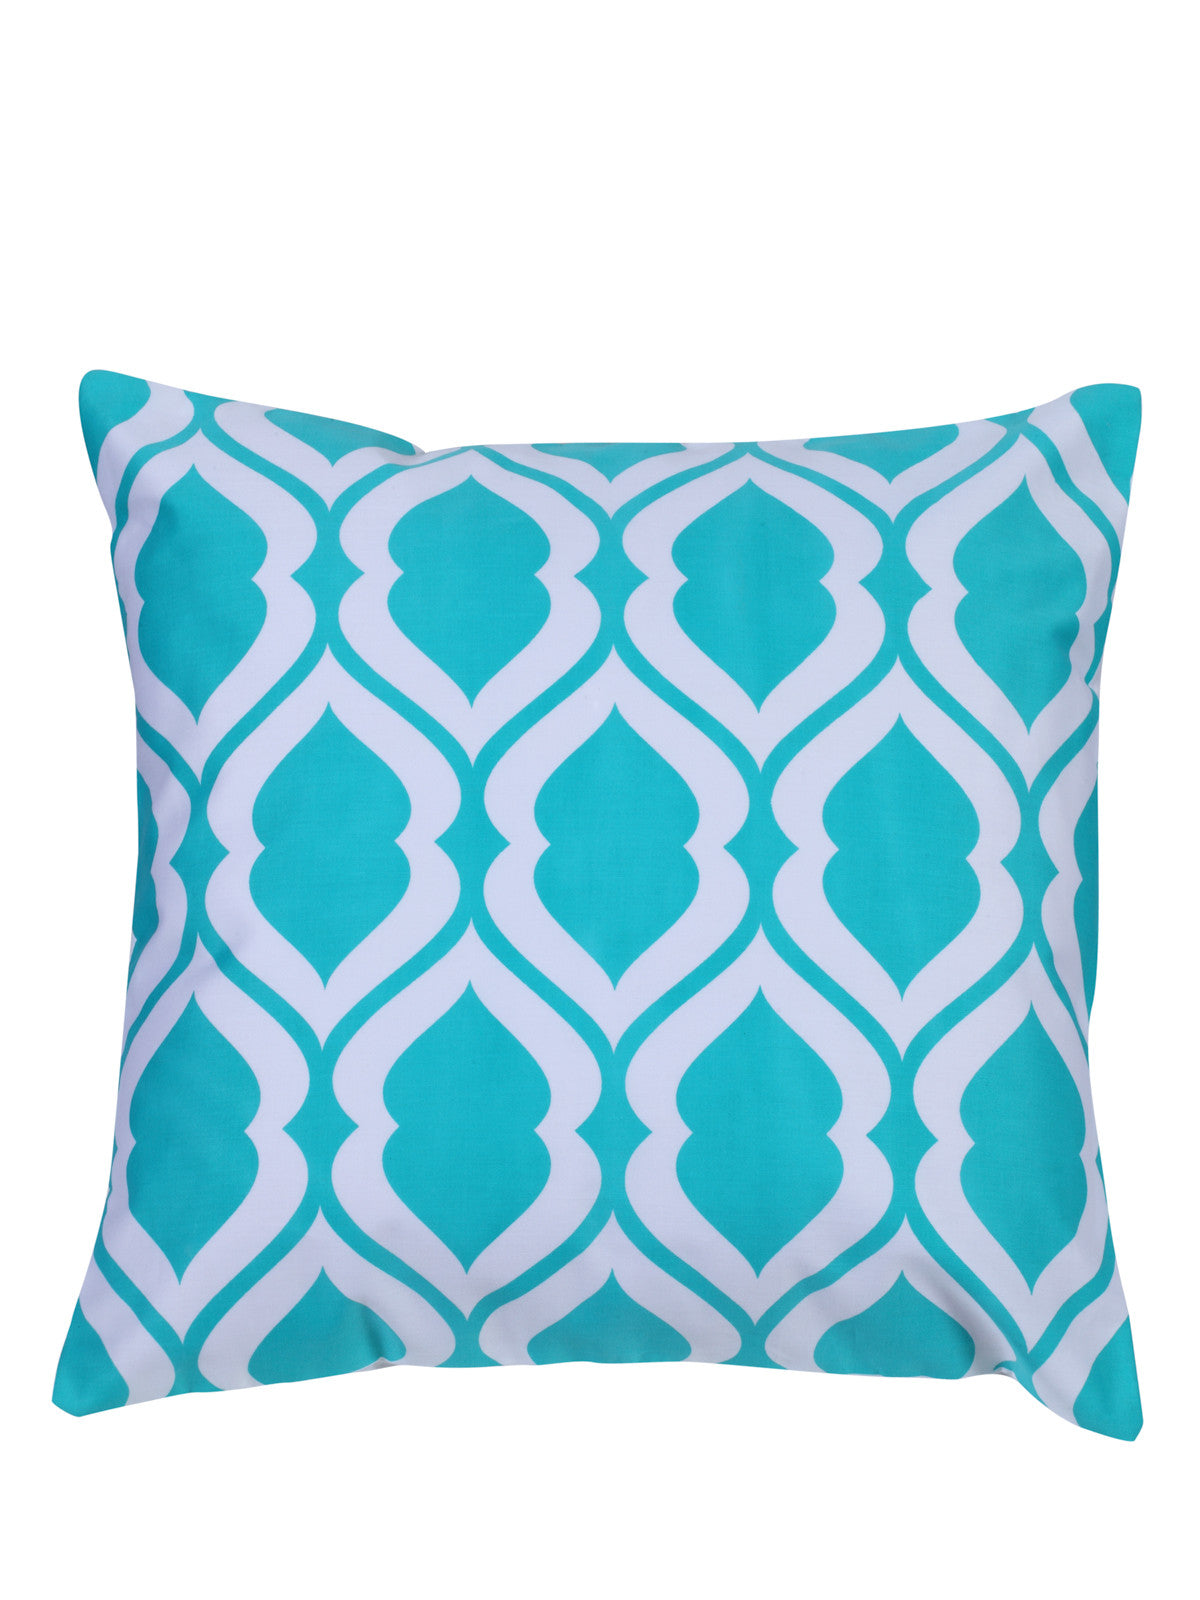 Handcrafted Geometric Eclectic Cushion Cover